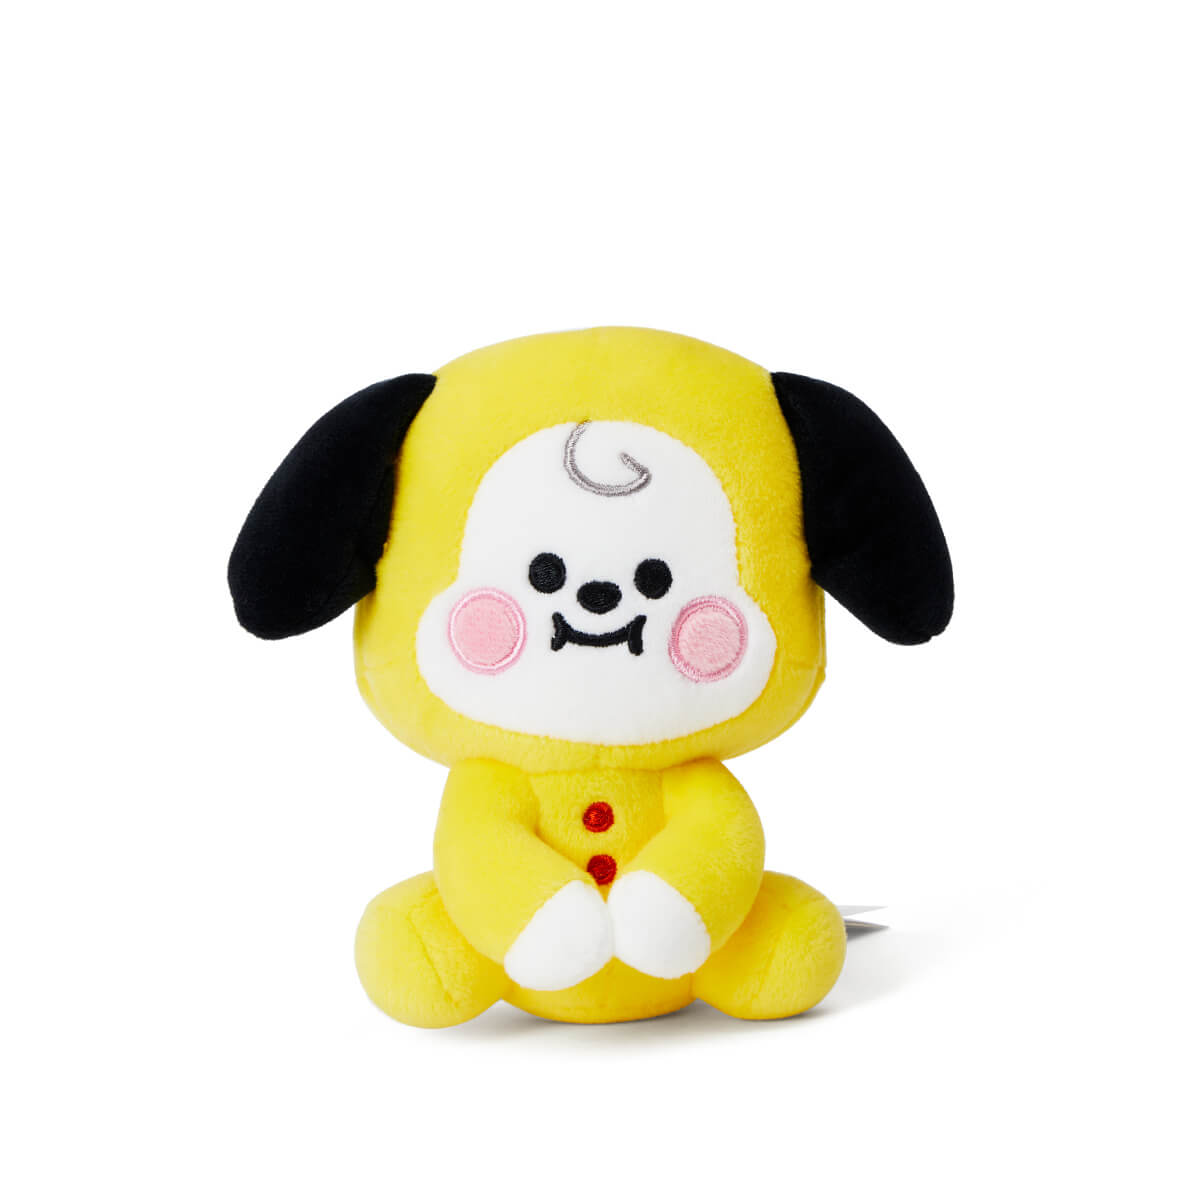 BT21 CHIMMY Baby Sitting Doll 4.7 inch